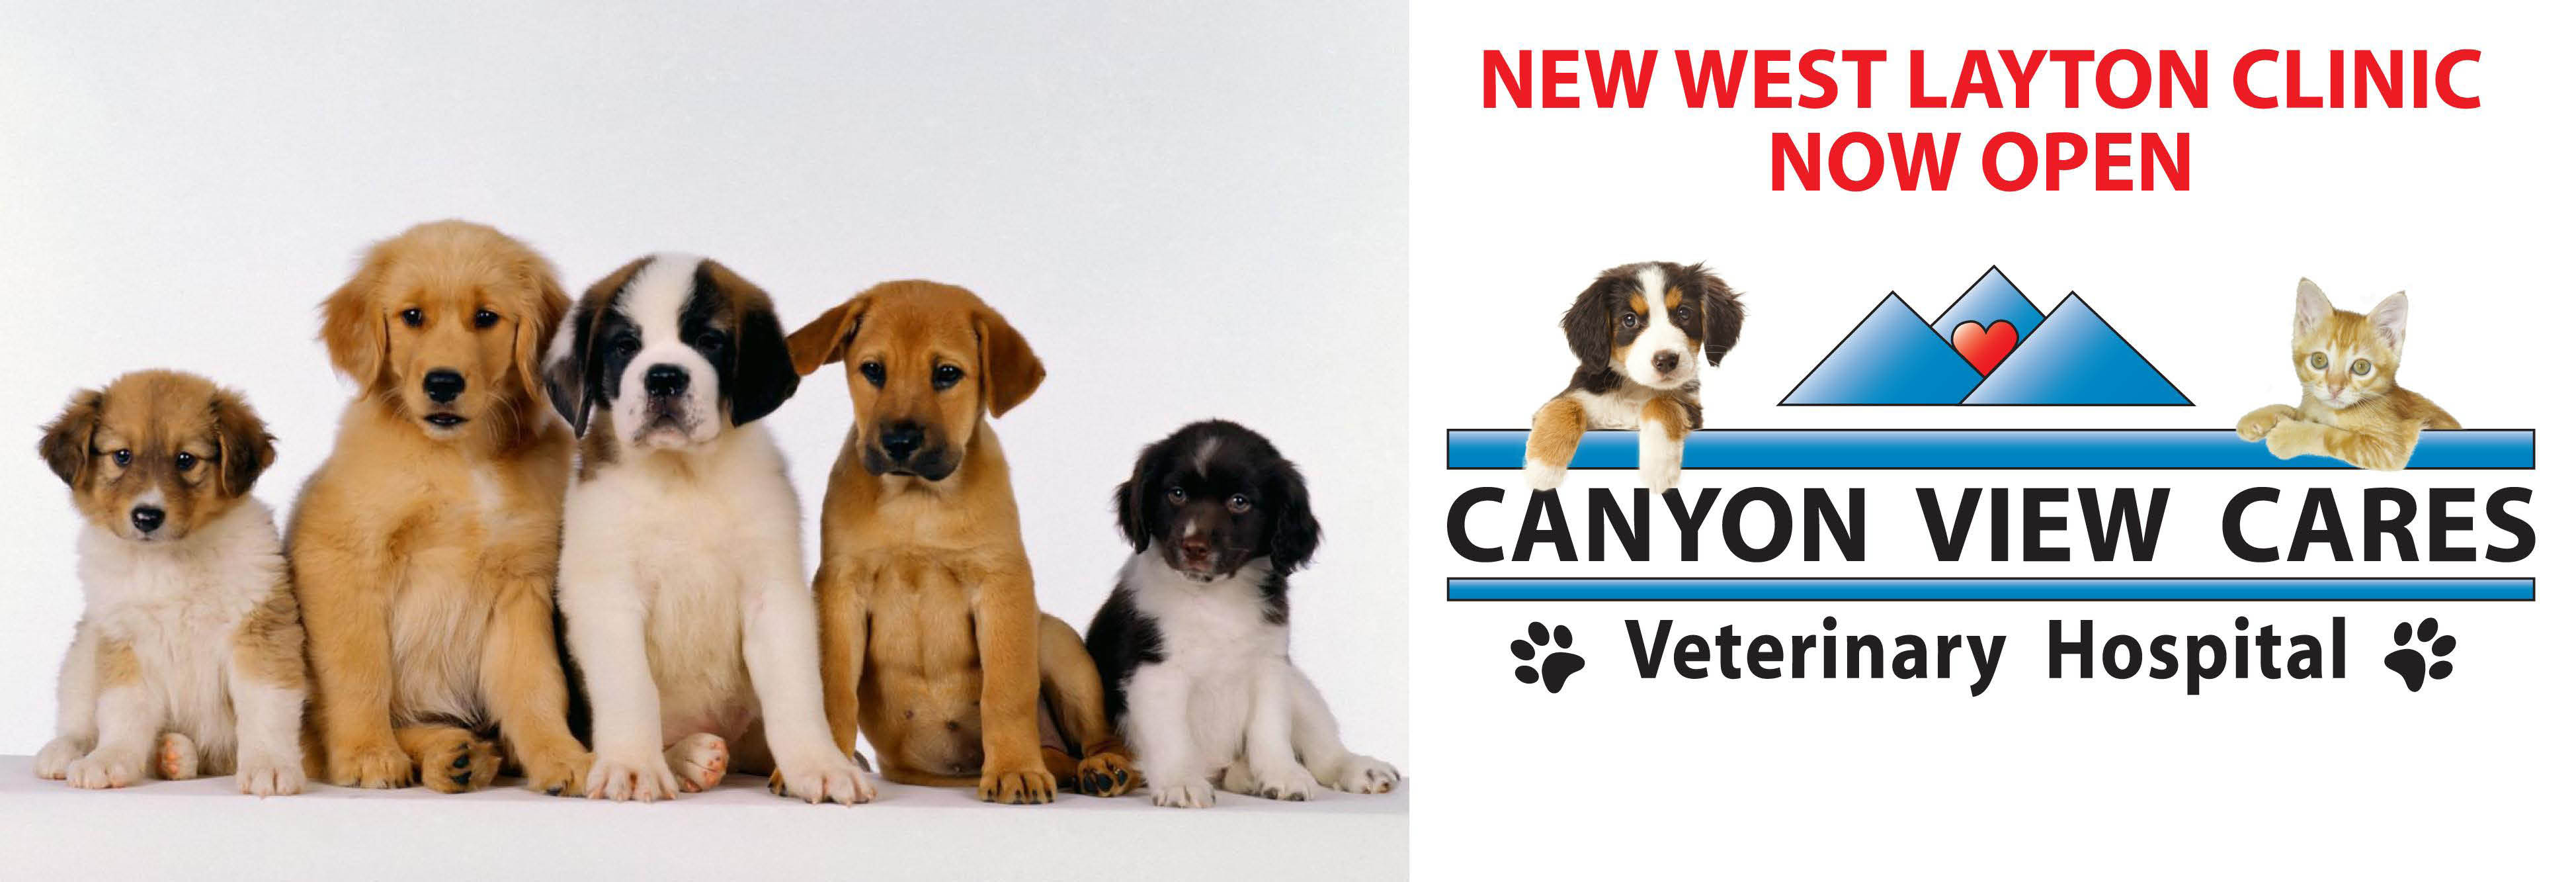 Canyon View Cares Veterinary Hospital Banner